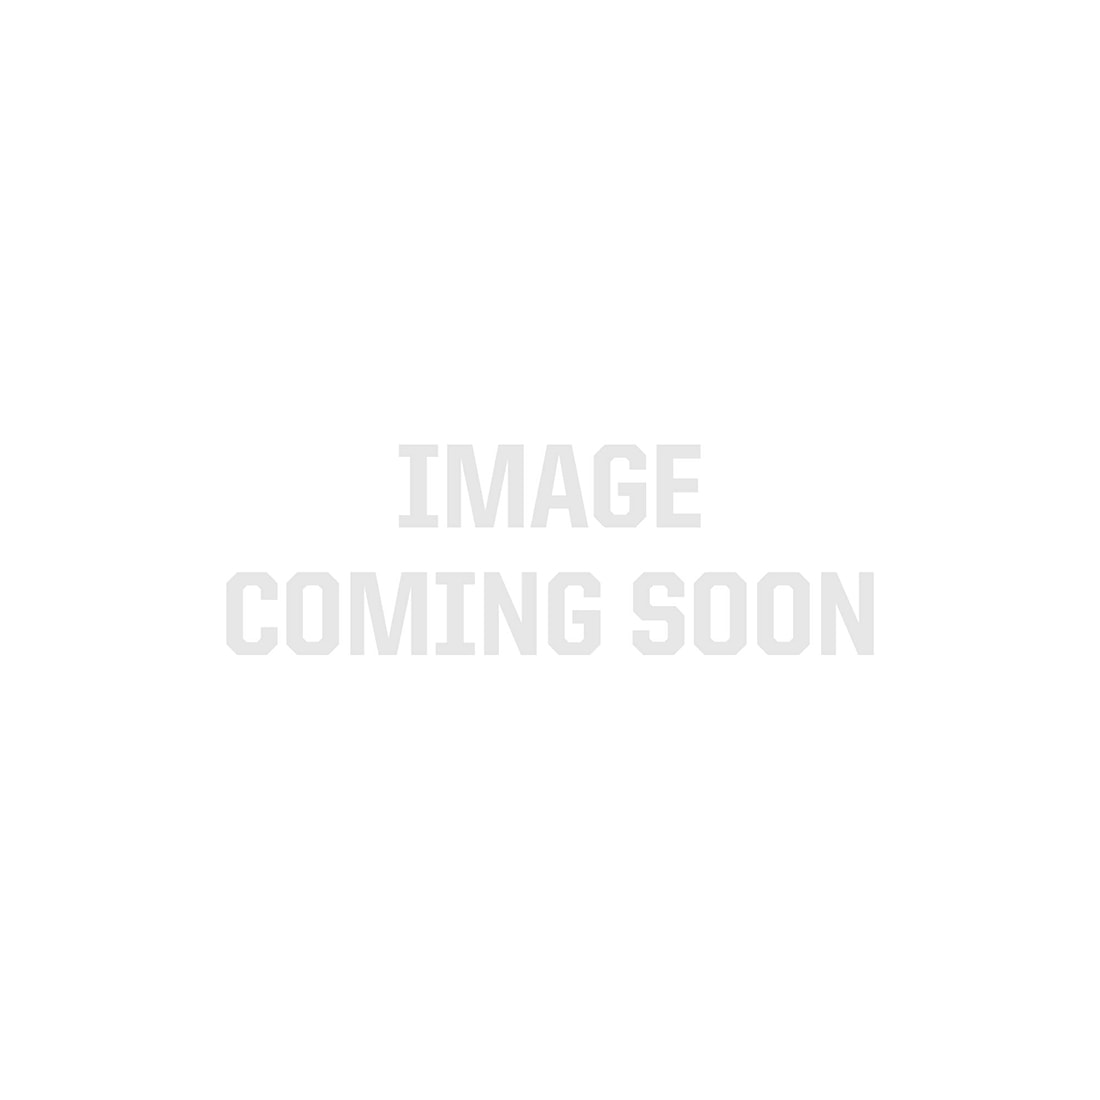 Lutron PJ2-3B-GWH-L01 Pico wireless control, 3-button with mid-setting